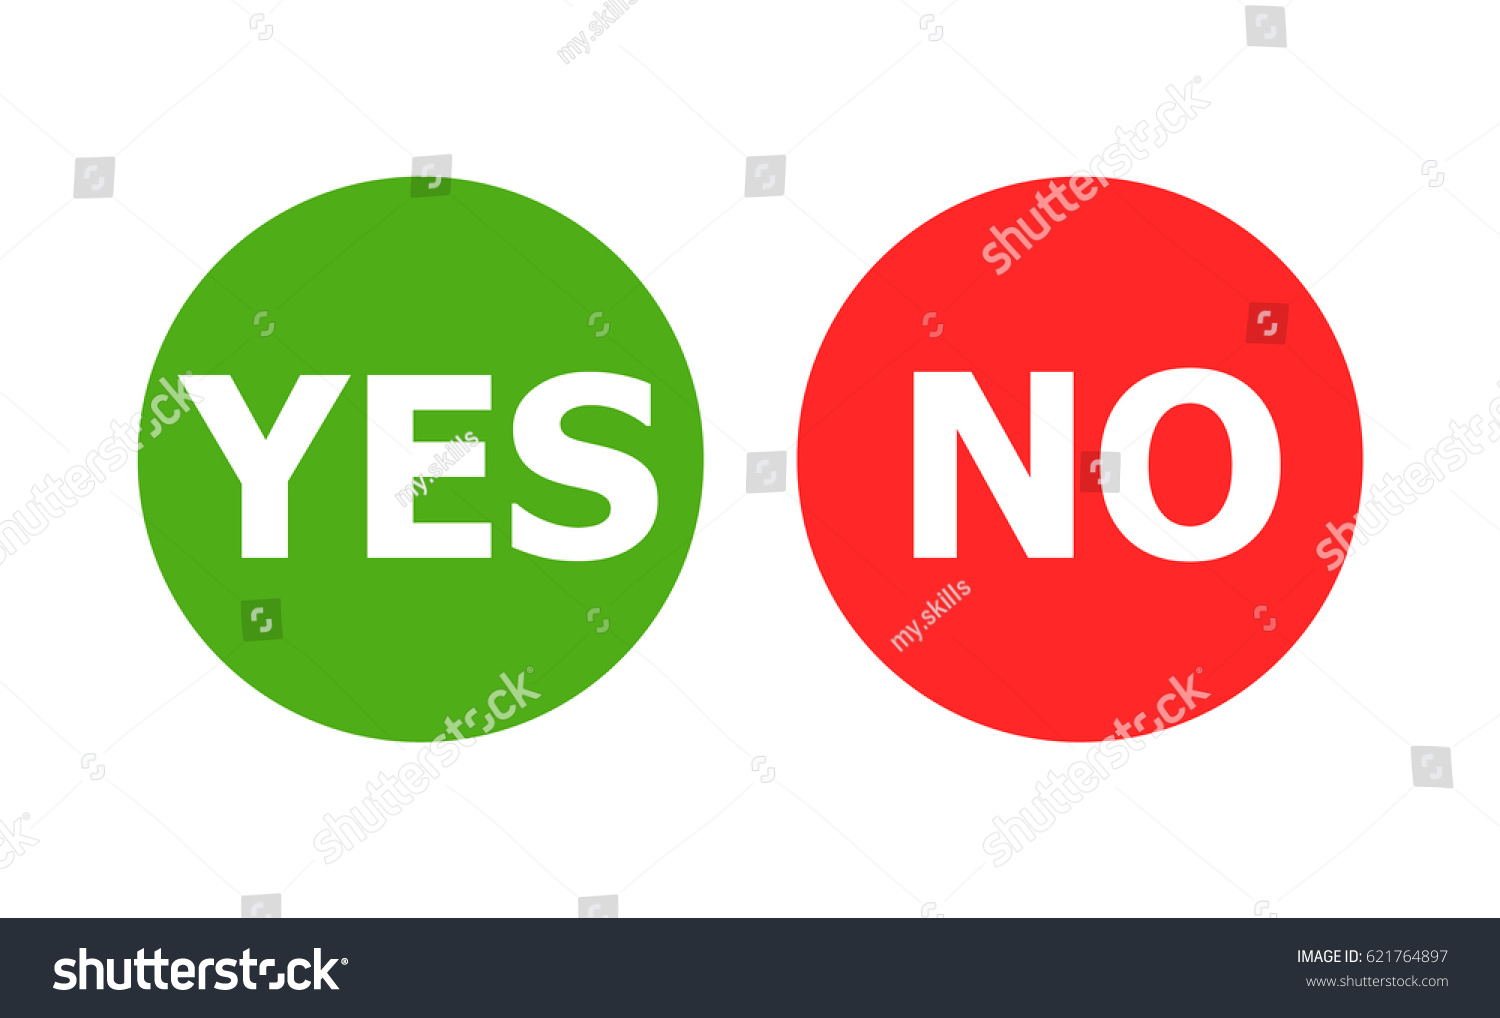 Symbols yes no stock vector 621764897 shutterstock symbols for yes and no buycottarizona Gallery